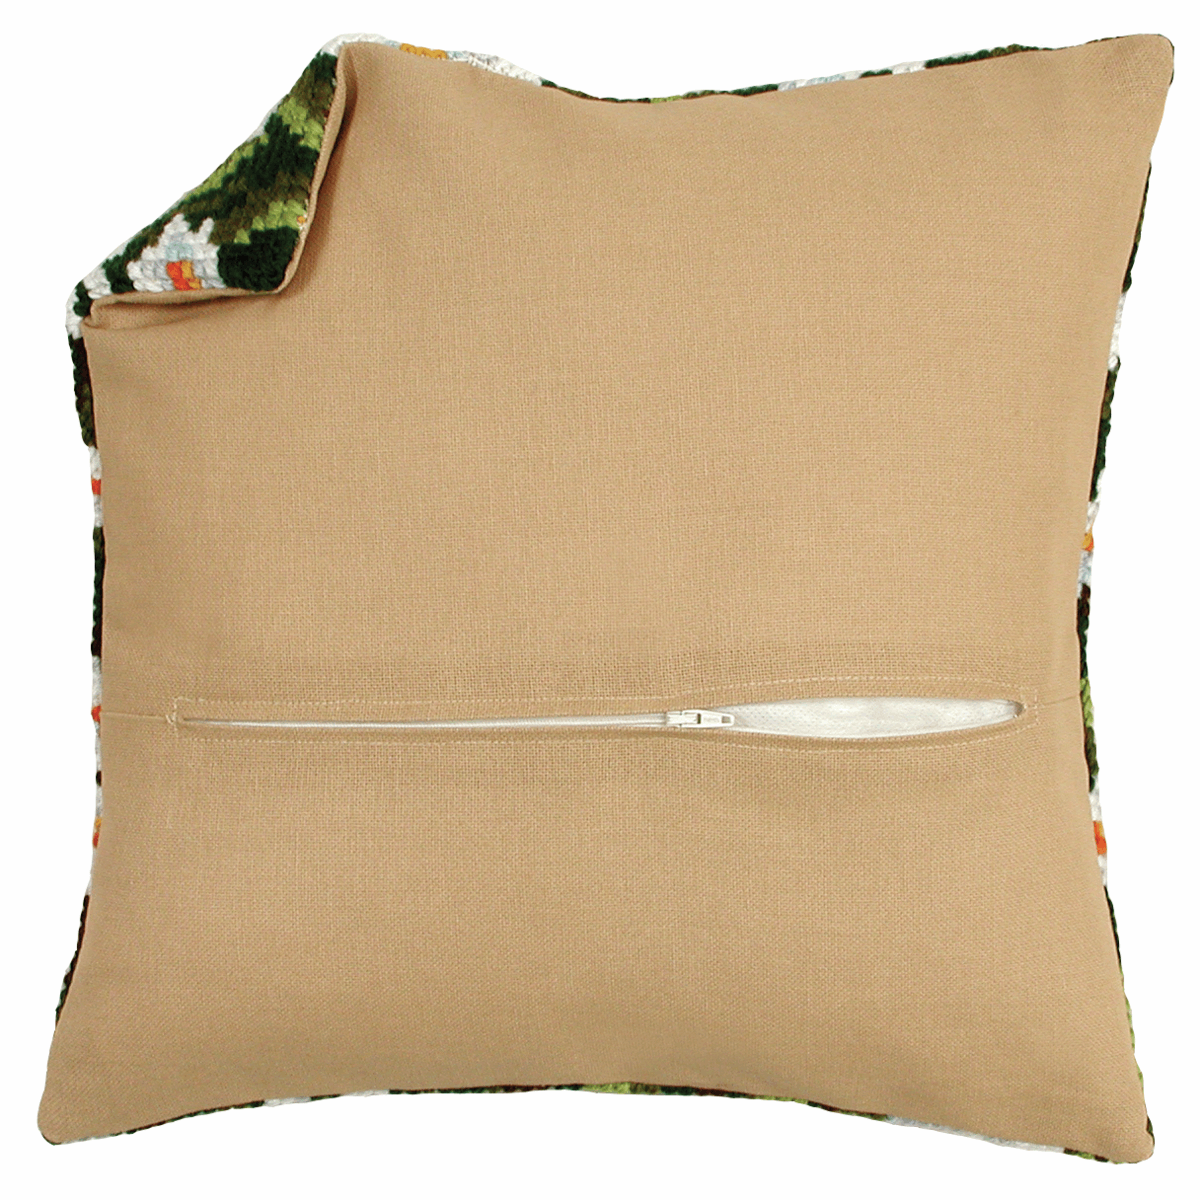 Picture of Cushion Back with Zipper: Natural: 45 x 45cm (18 x 18in)